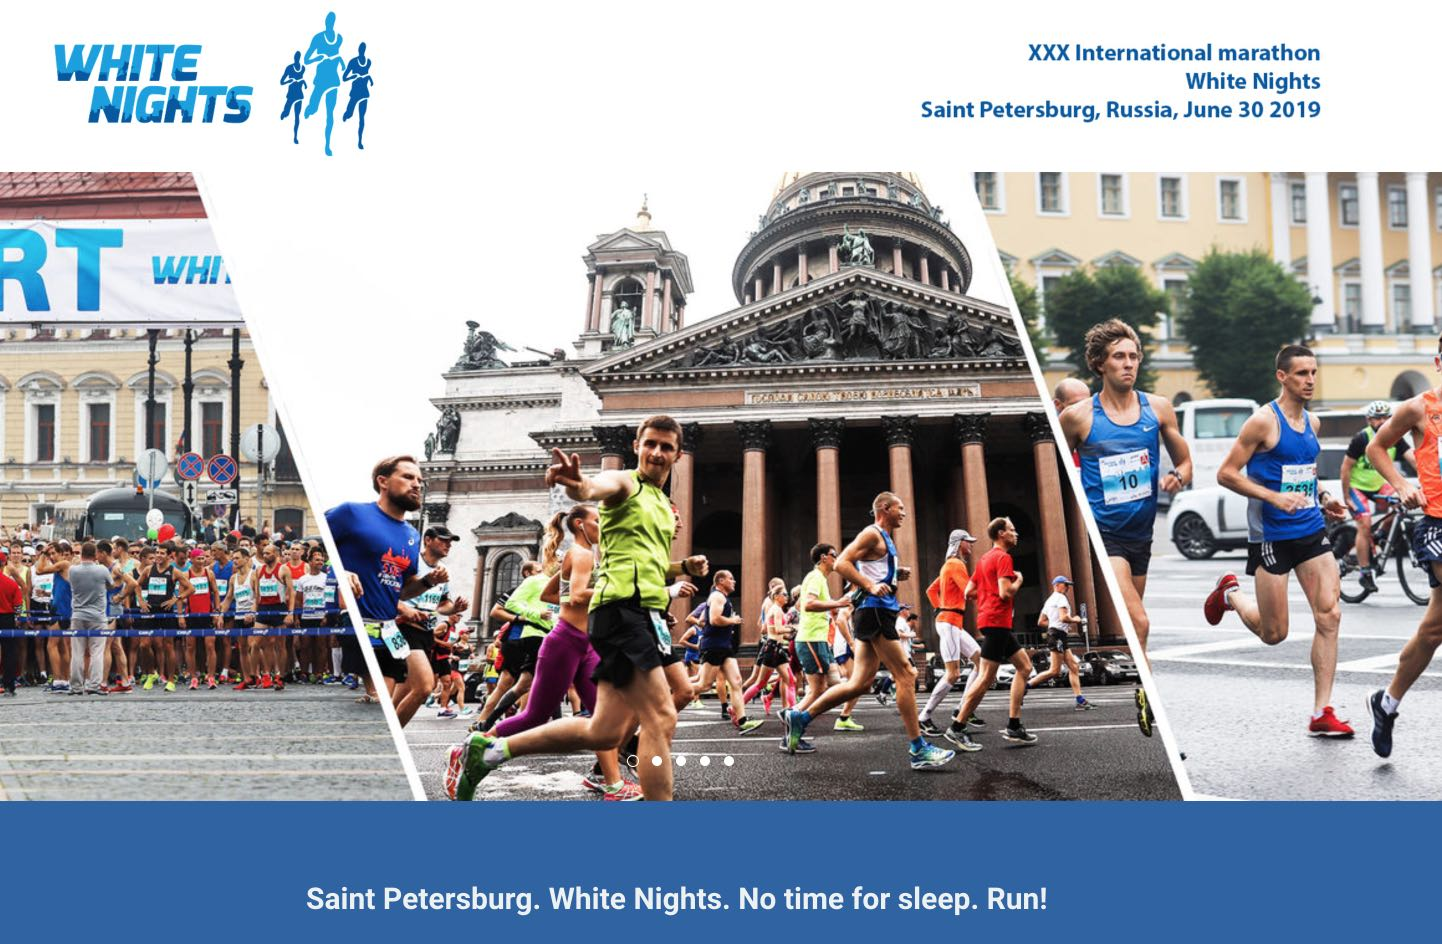 White Nights Marathon St Petersburg